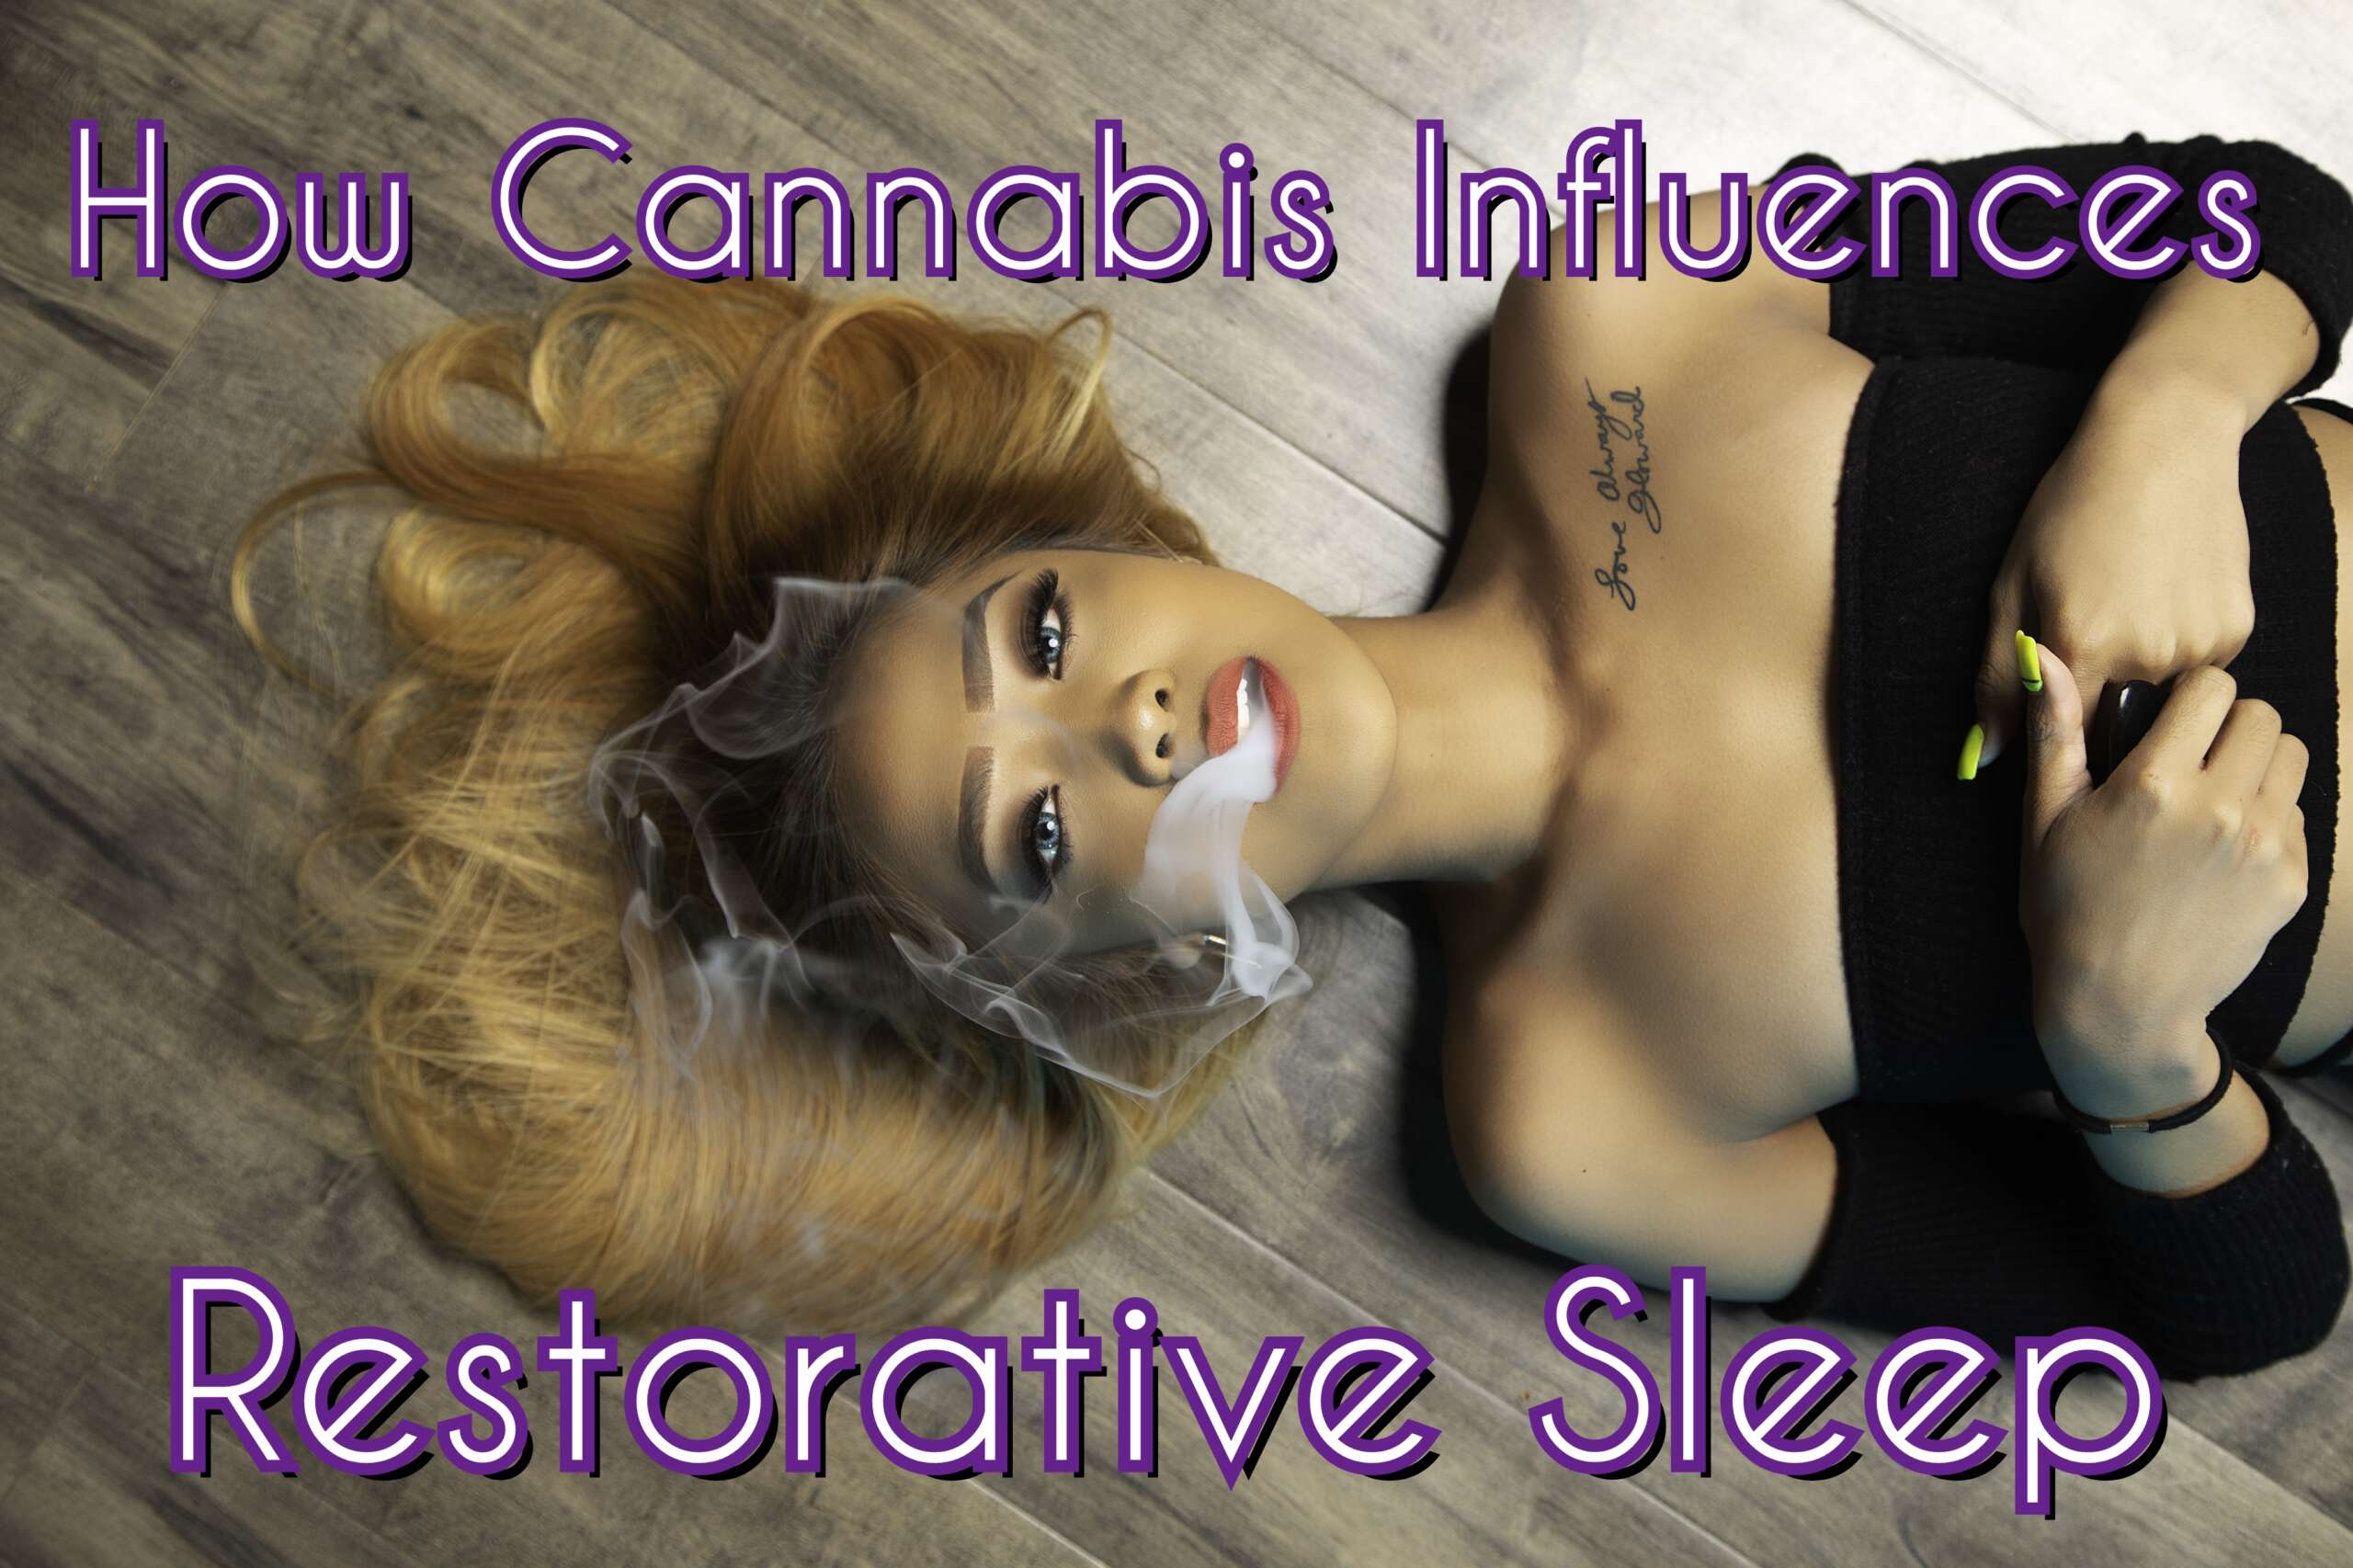 An examination into how cannabis helps balance restorative sleep patterns and its effect on promoting focused wakefulness.